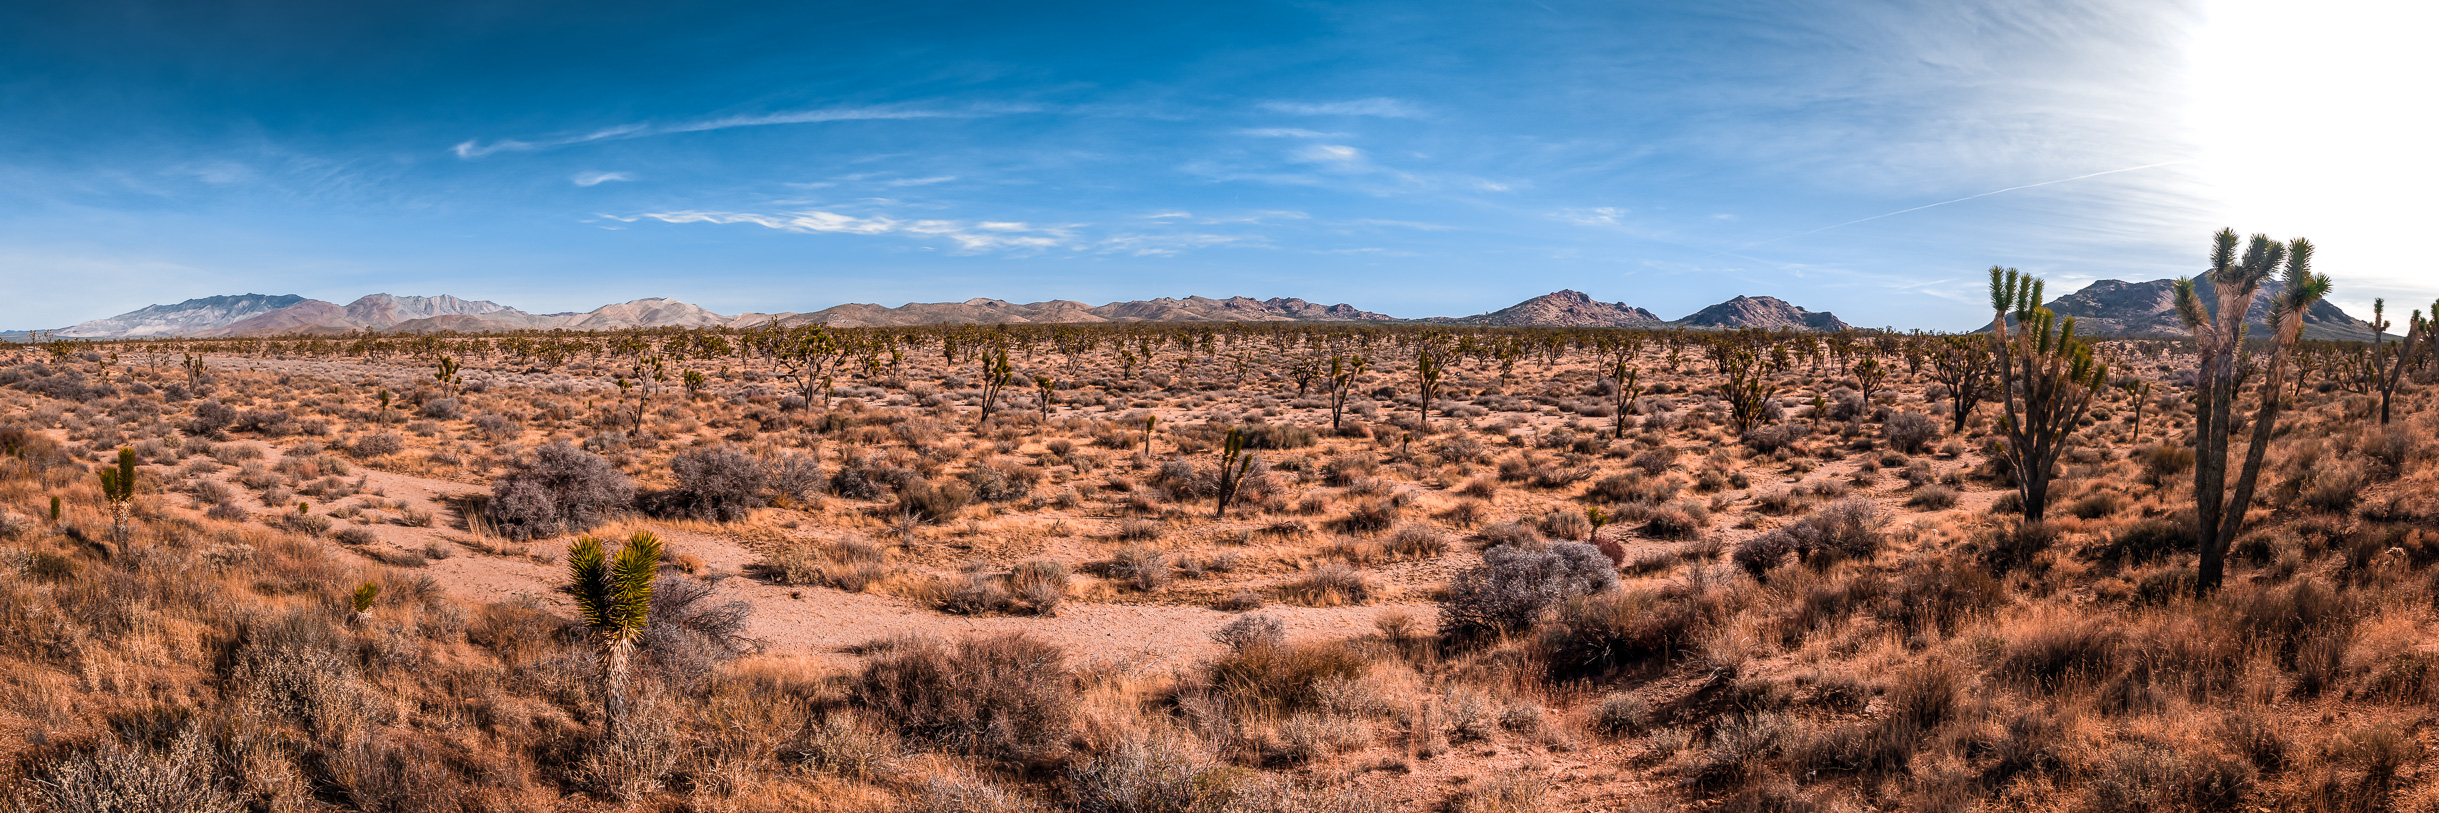 The arid desert landscape of California's Mojave National Preserve stretches into the distance.